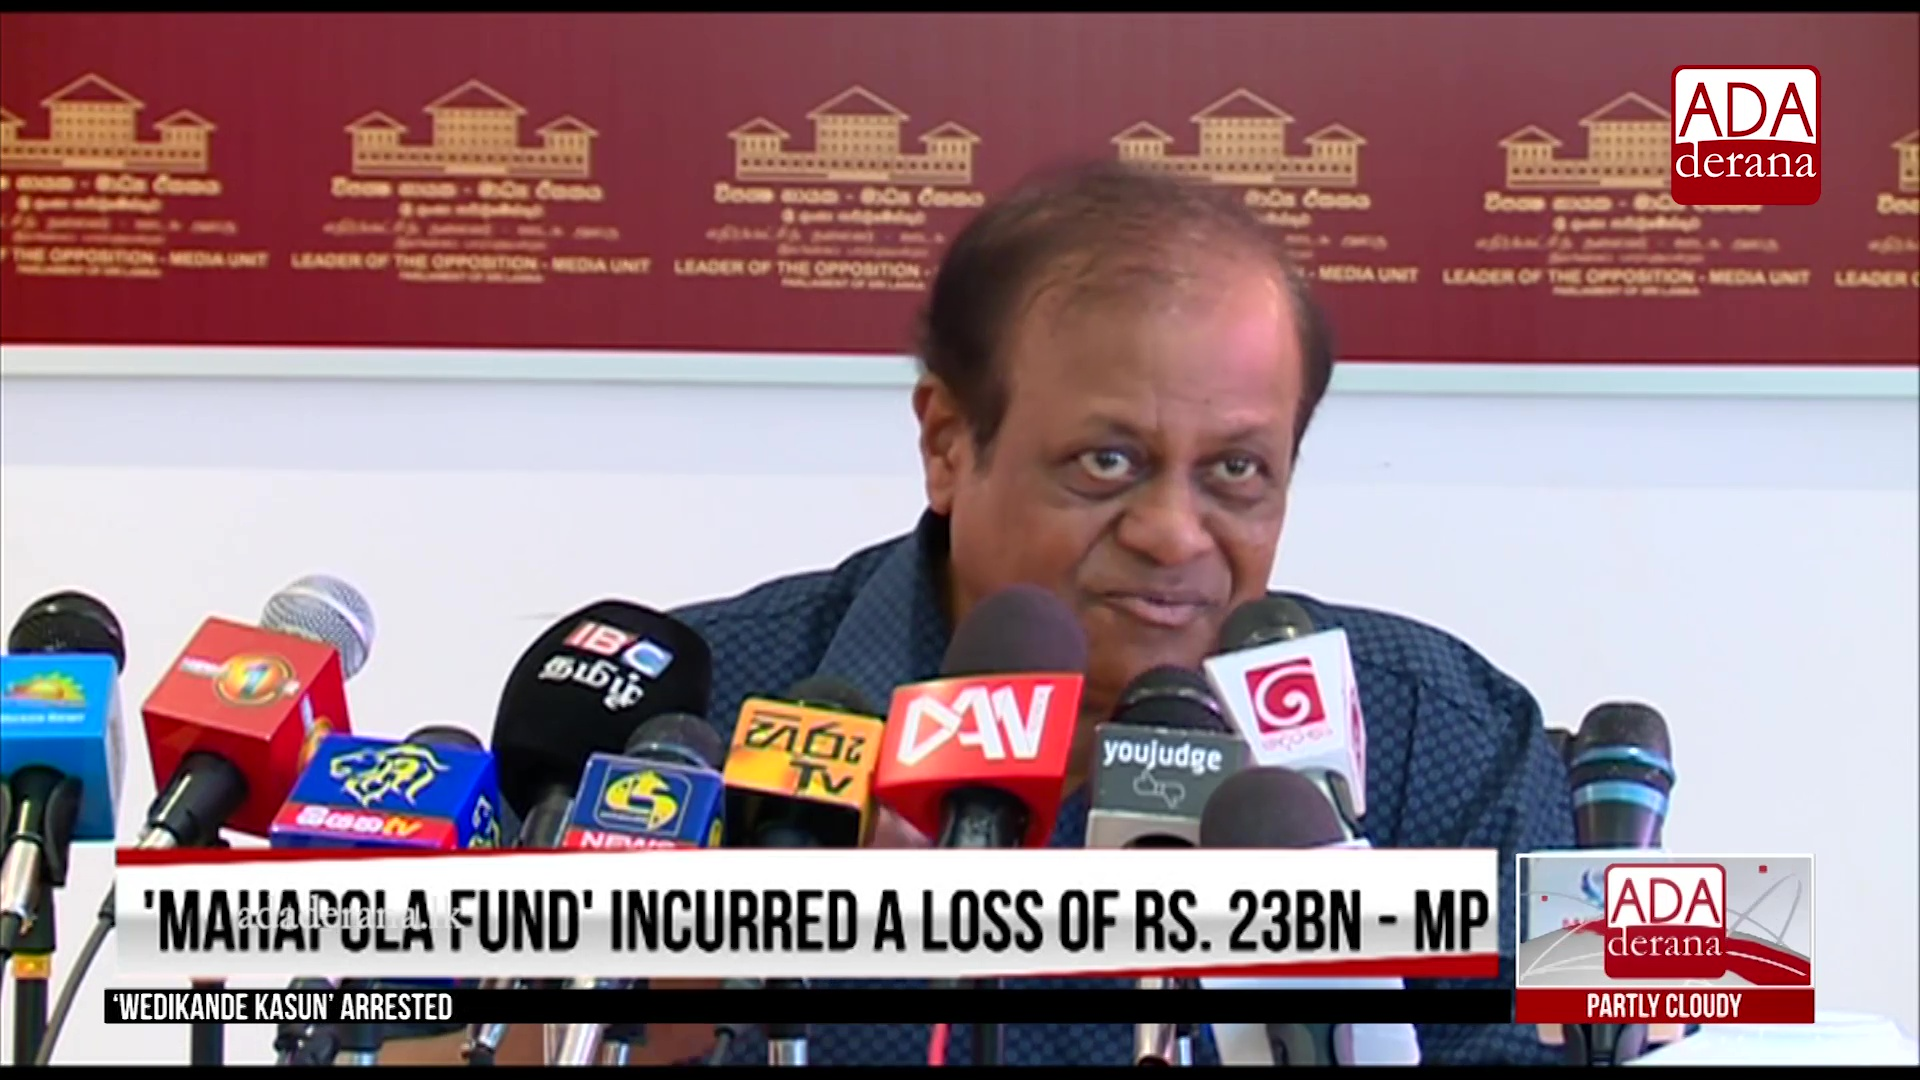 &#39Mahapola Fund&#39 incurred a loss of Rs 23 bn - Susil Premajayantha (English)